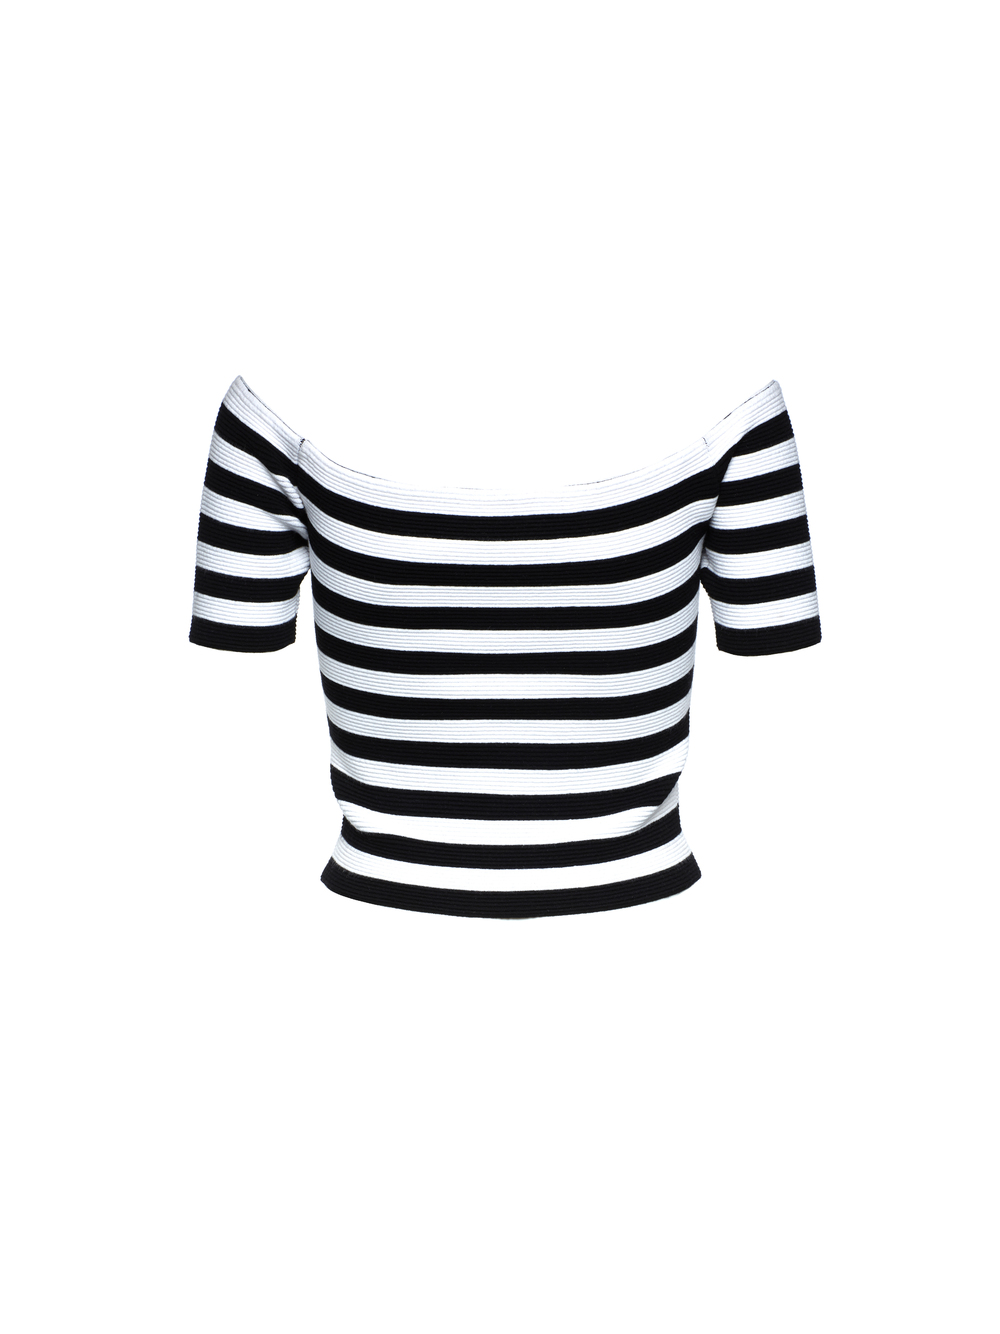 If you'd prefer something more form fitting, try a striped off the shoulder top. Dress it down with a pair of denim shorts or dress it up with a flowing mid-length skirt and heels. This look nails the nautical trend, which has also been a huge hit on the runways this season. Alice + Olivia 'Grant' Off the Shoulder Top